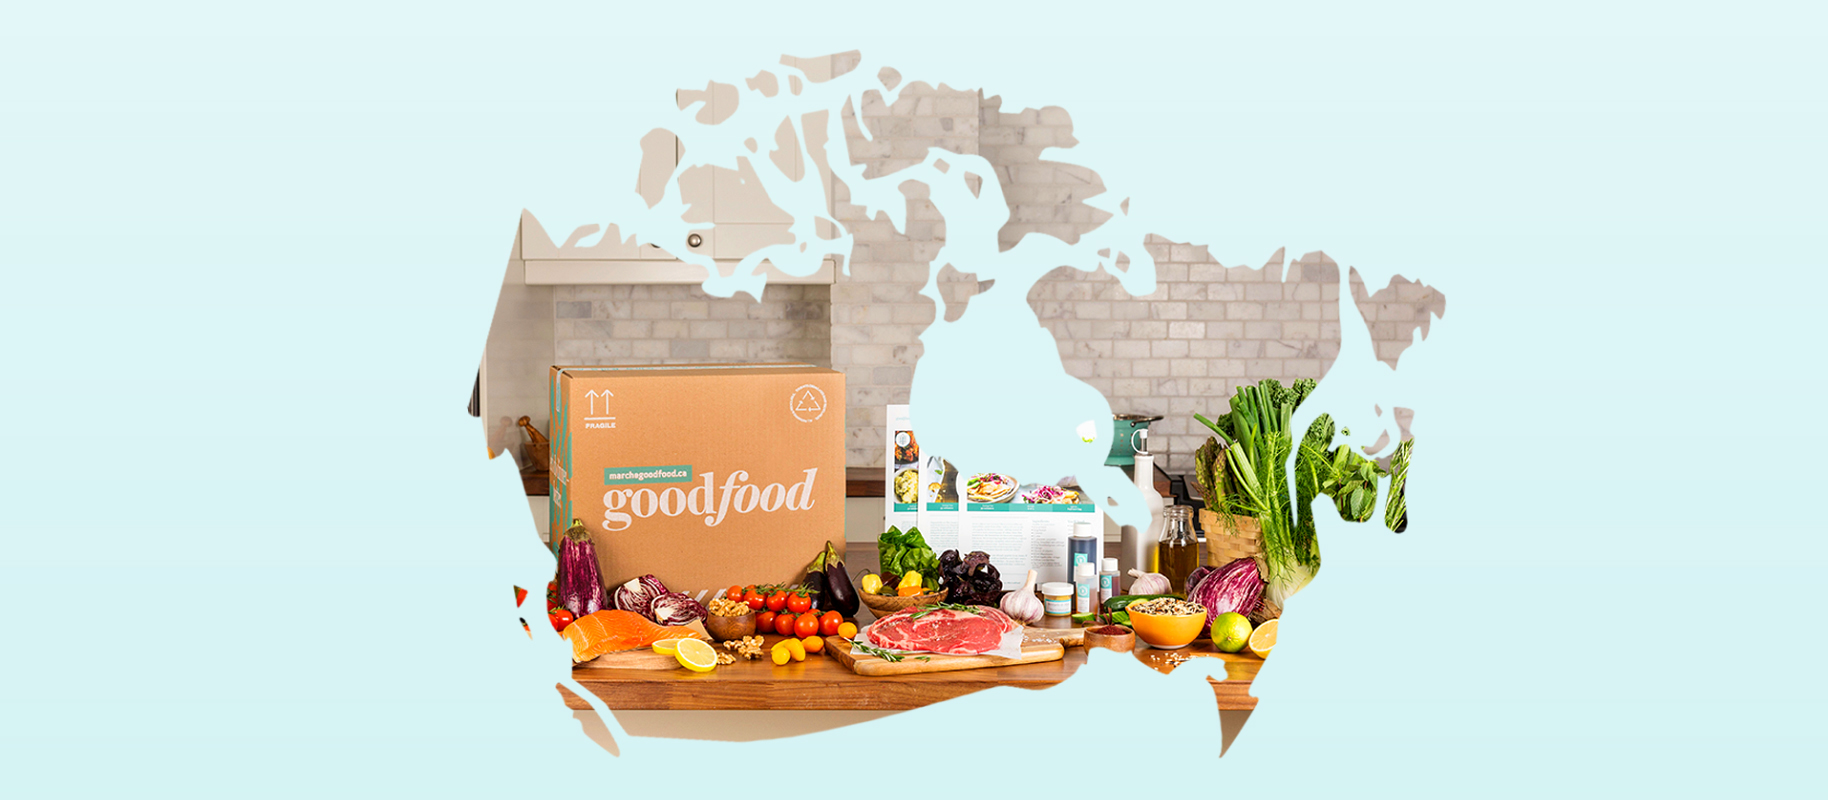 The Goodfood Movement Goes Nationwide